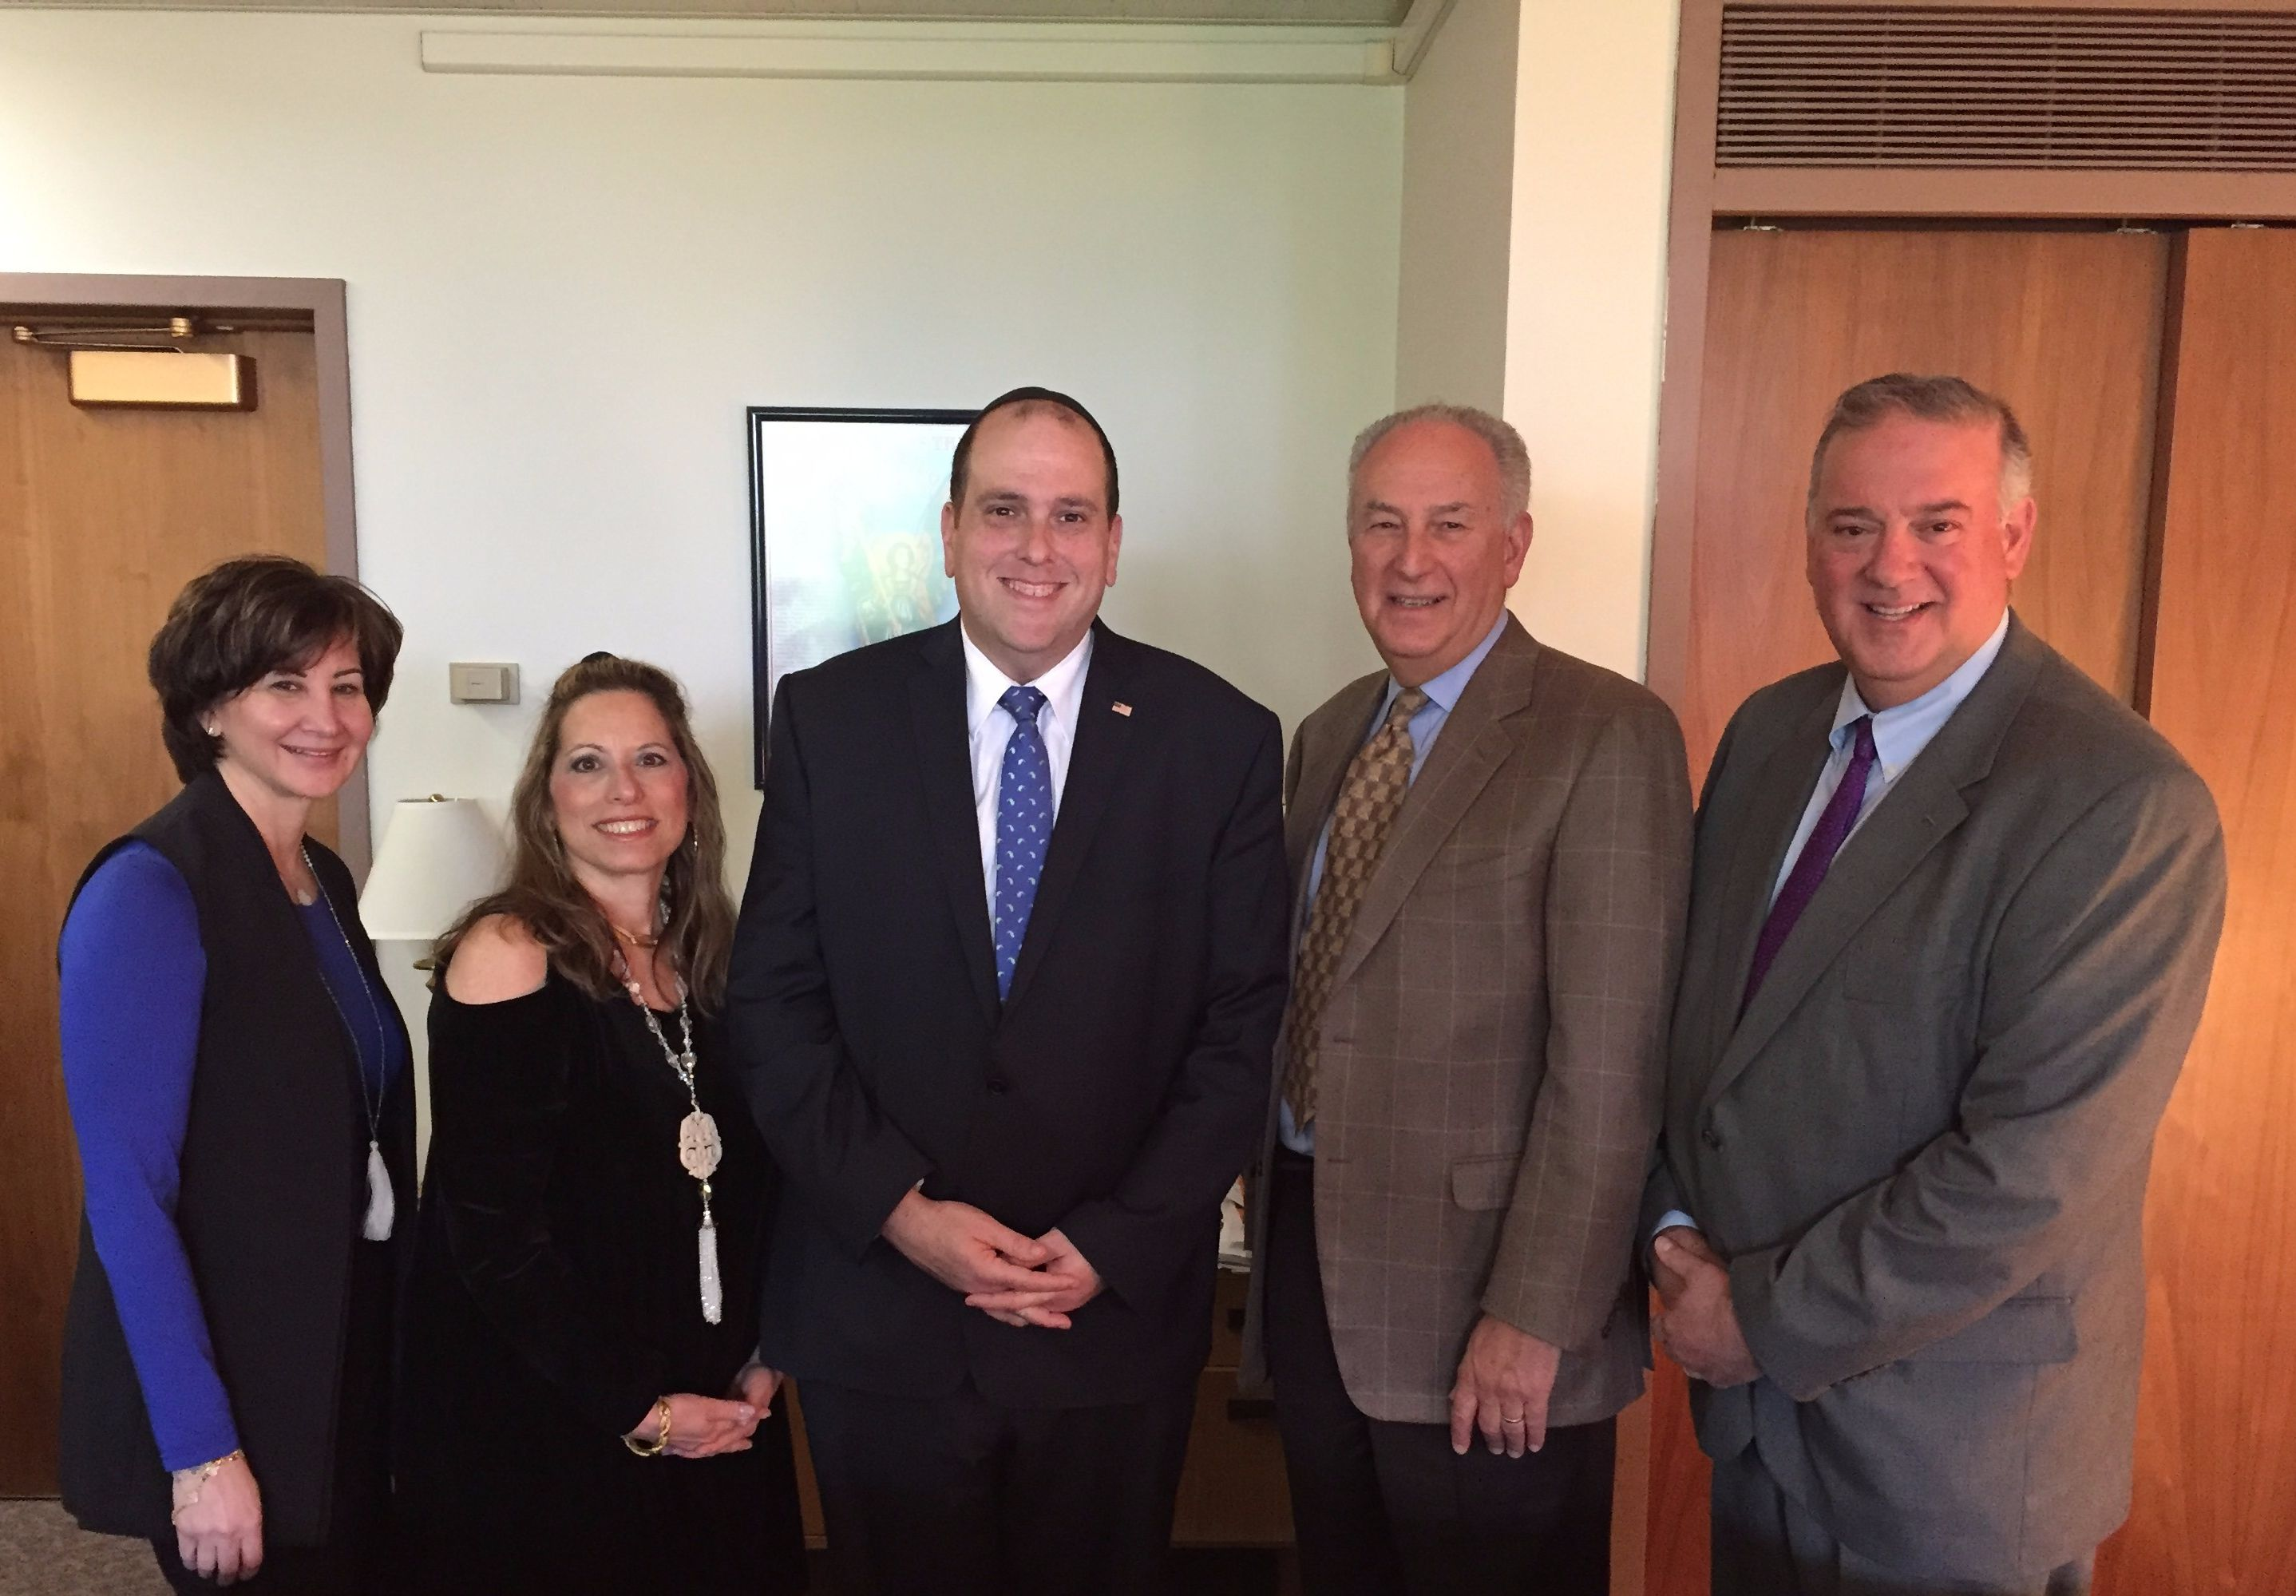 Queens Chamber of  Commerce  Members Fran Biderman-Gross, Cindy Grosz, Assemblyman Michael Simanowitz, Michael Nussbaum and Tom Gerch